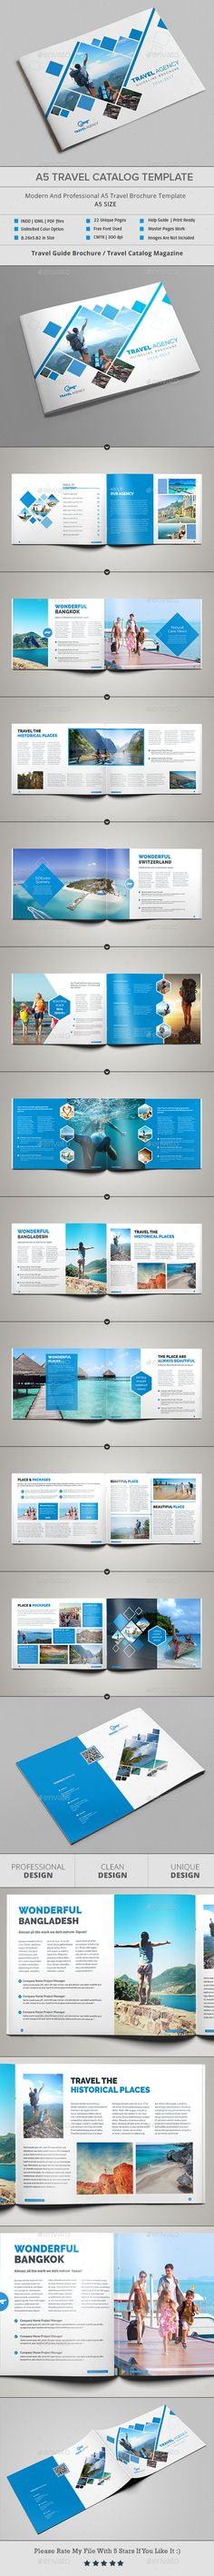 A5 Travel Catalog Template - #Catalogs #Brochures Download here: https://graphicriver.net/item/a5-travel-catalog-template/20083543?ref=alena994